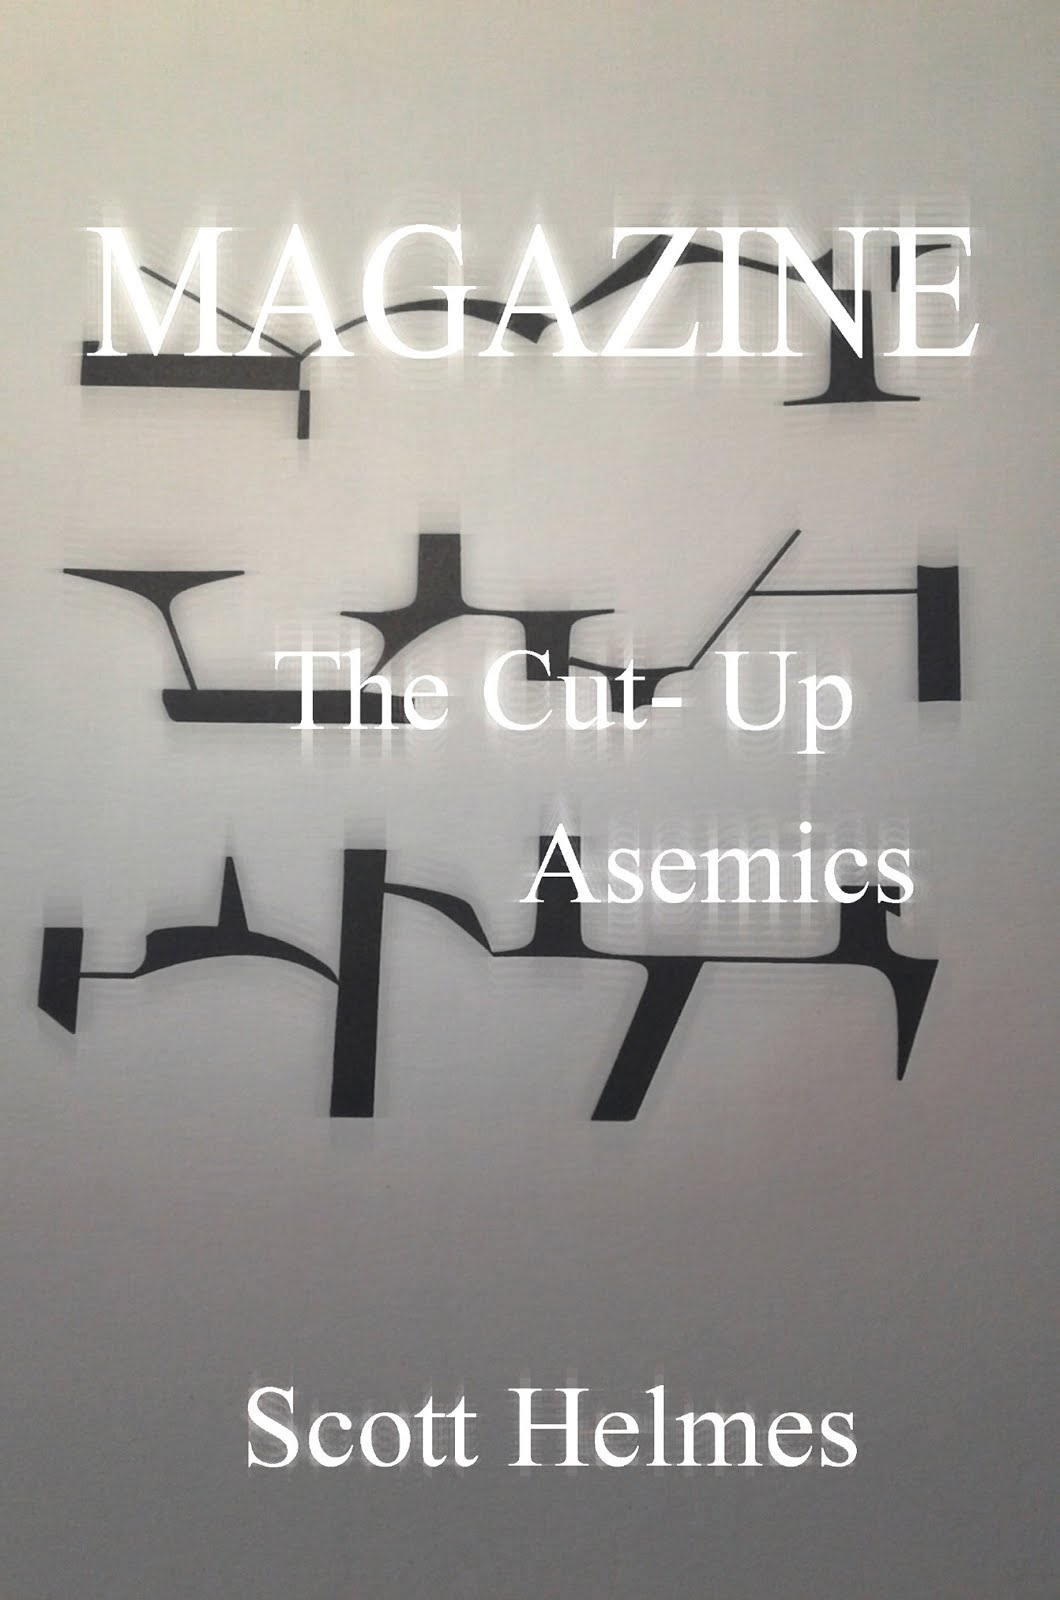 Available Now @ Amazon! Magazine: The Cut-Up Asemics by Scott Helmes